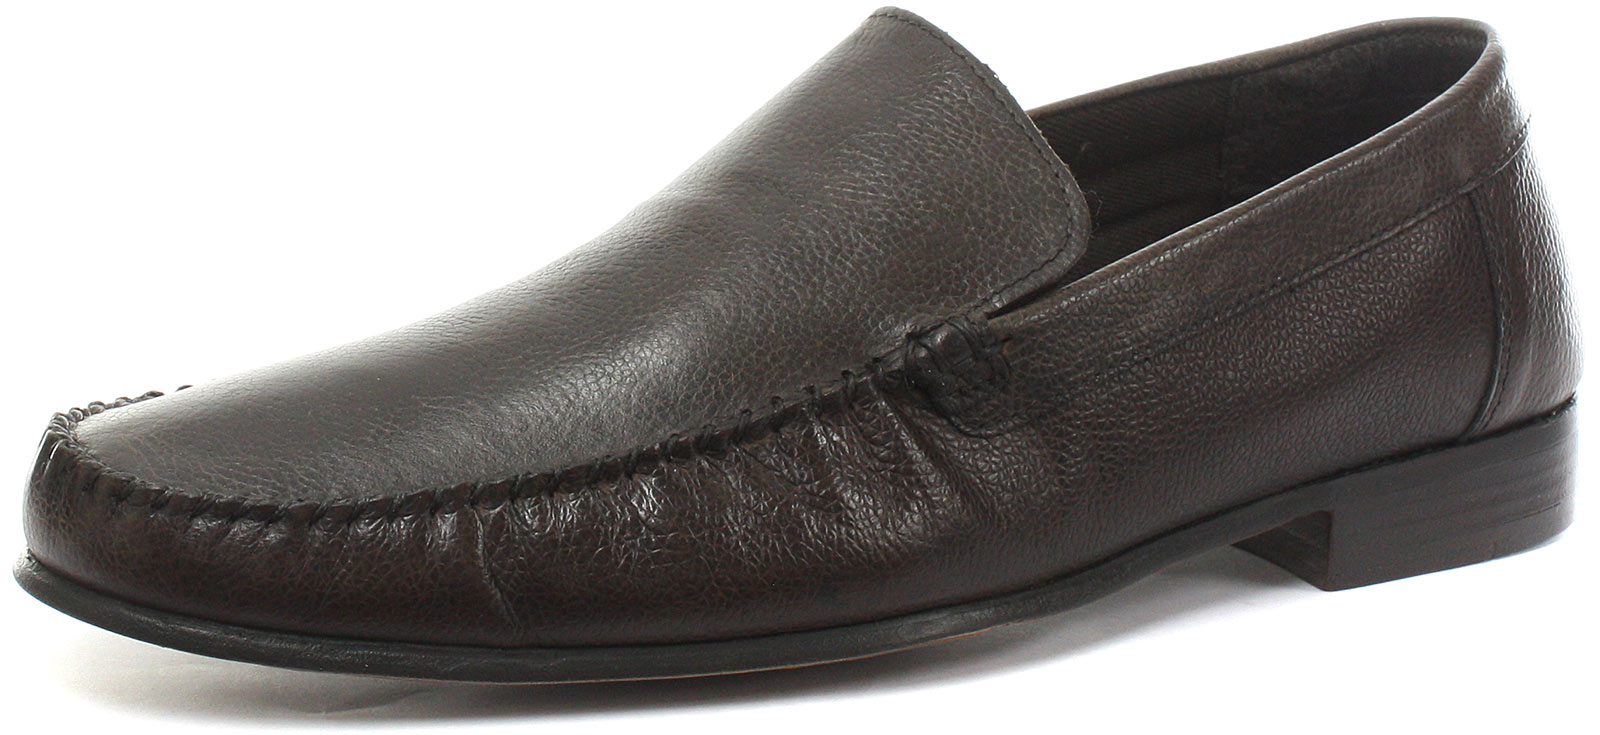 Red Tape Mens Tycoon Dark Brown Formal Shoe Uk 9 Ebay